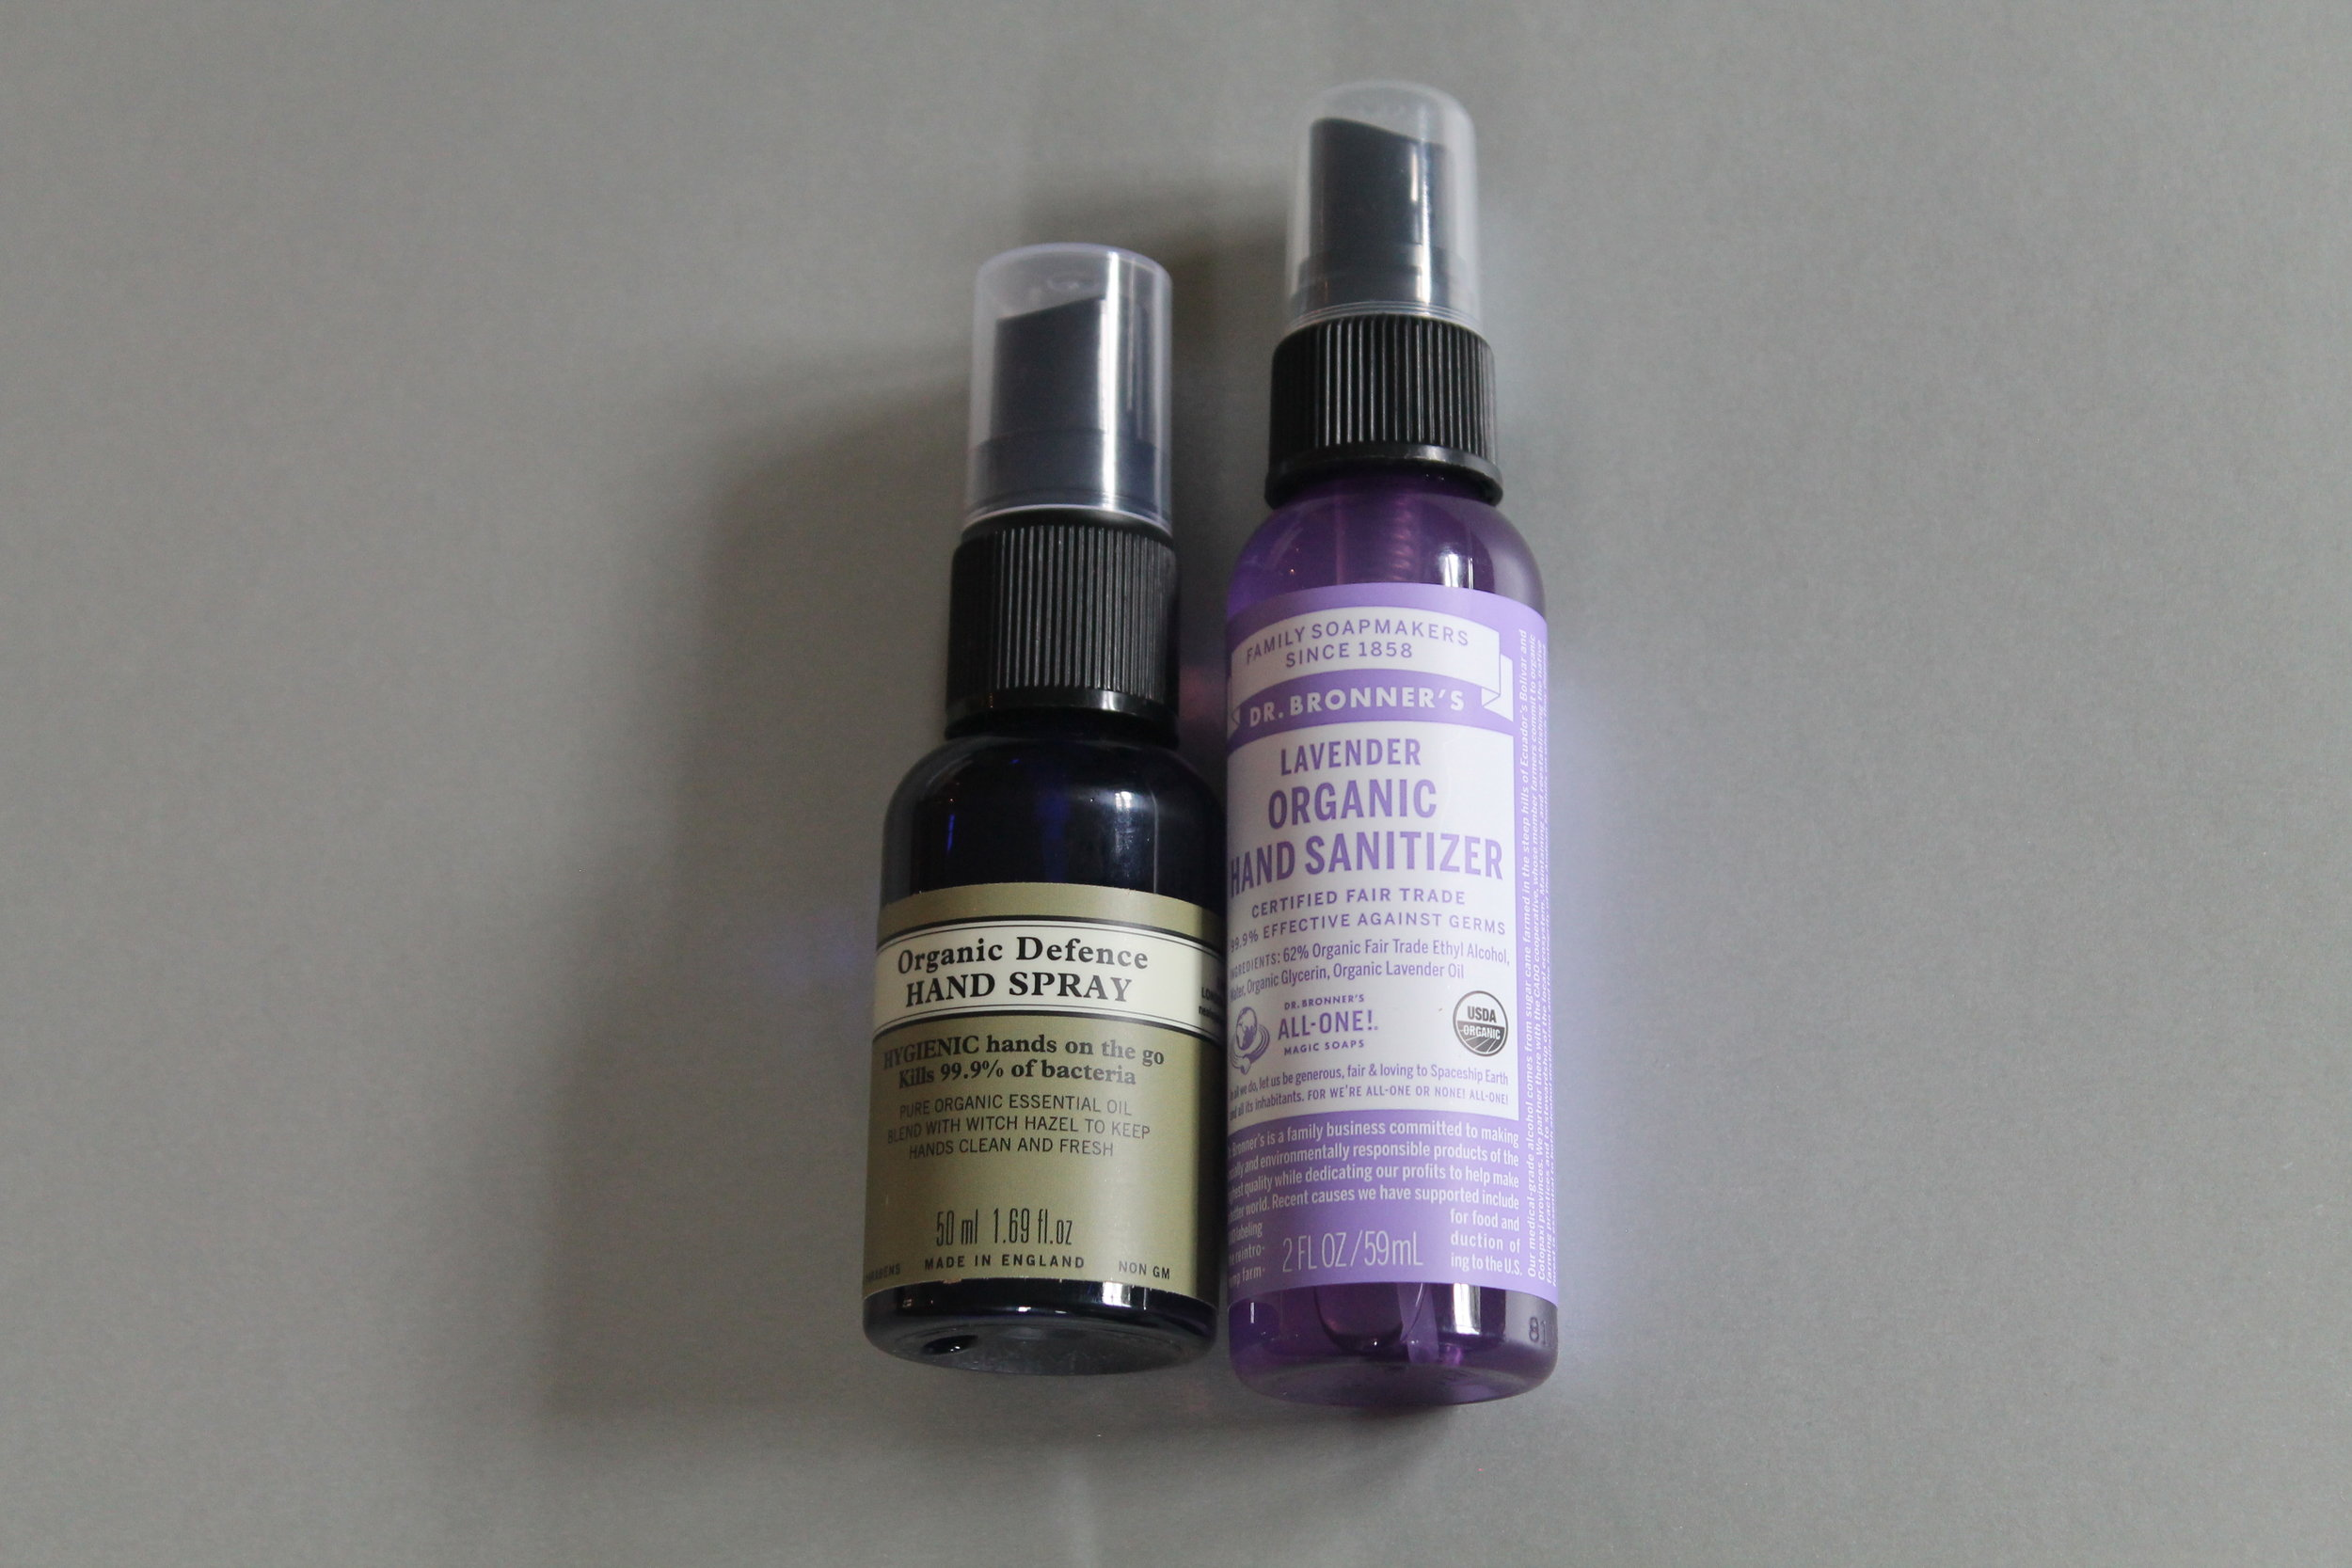 - Neal's Yard Organic Defence Hand Spray and Dr Bronner's Lavender Organic Hand Sanitiser